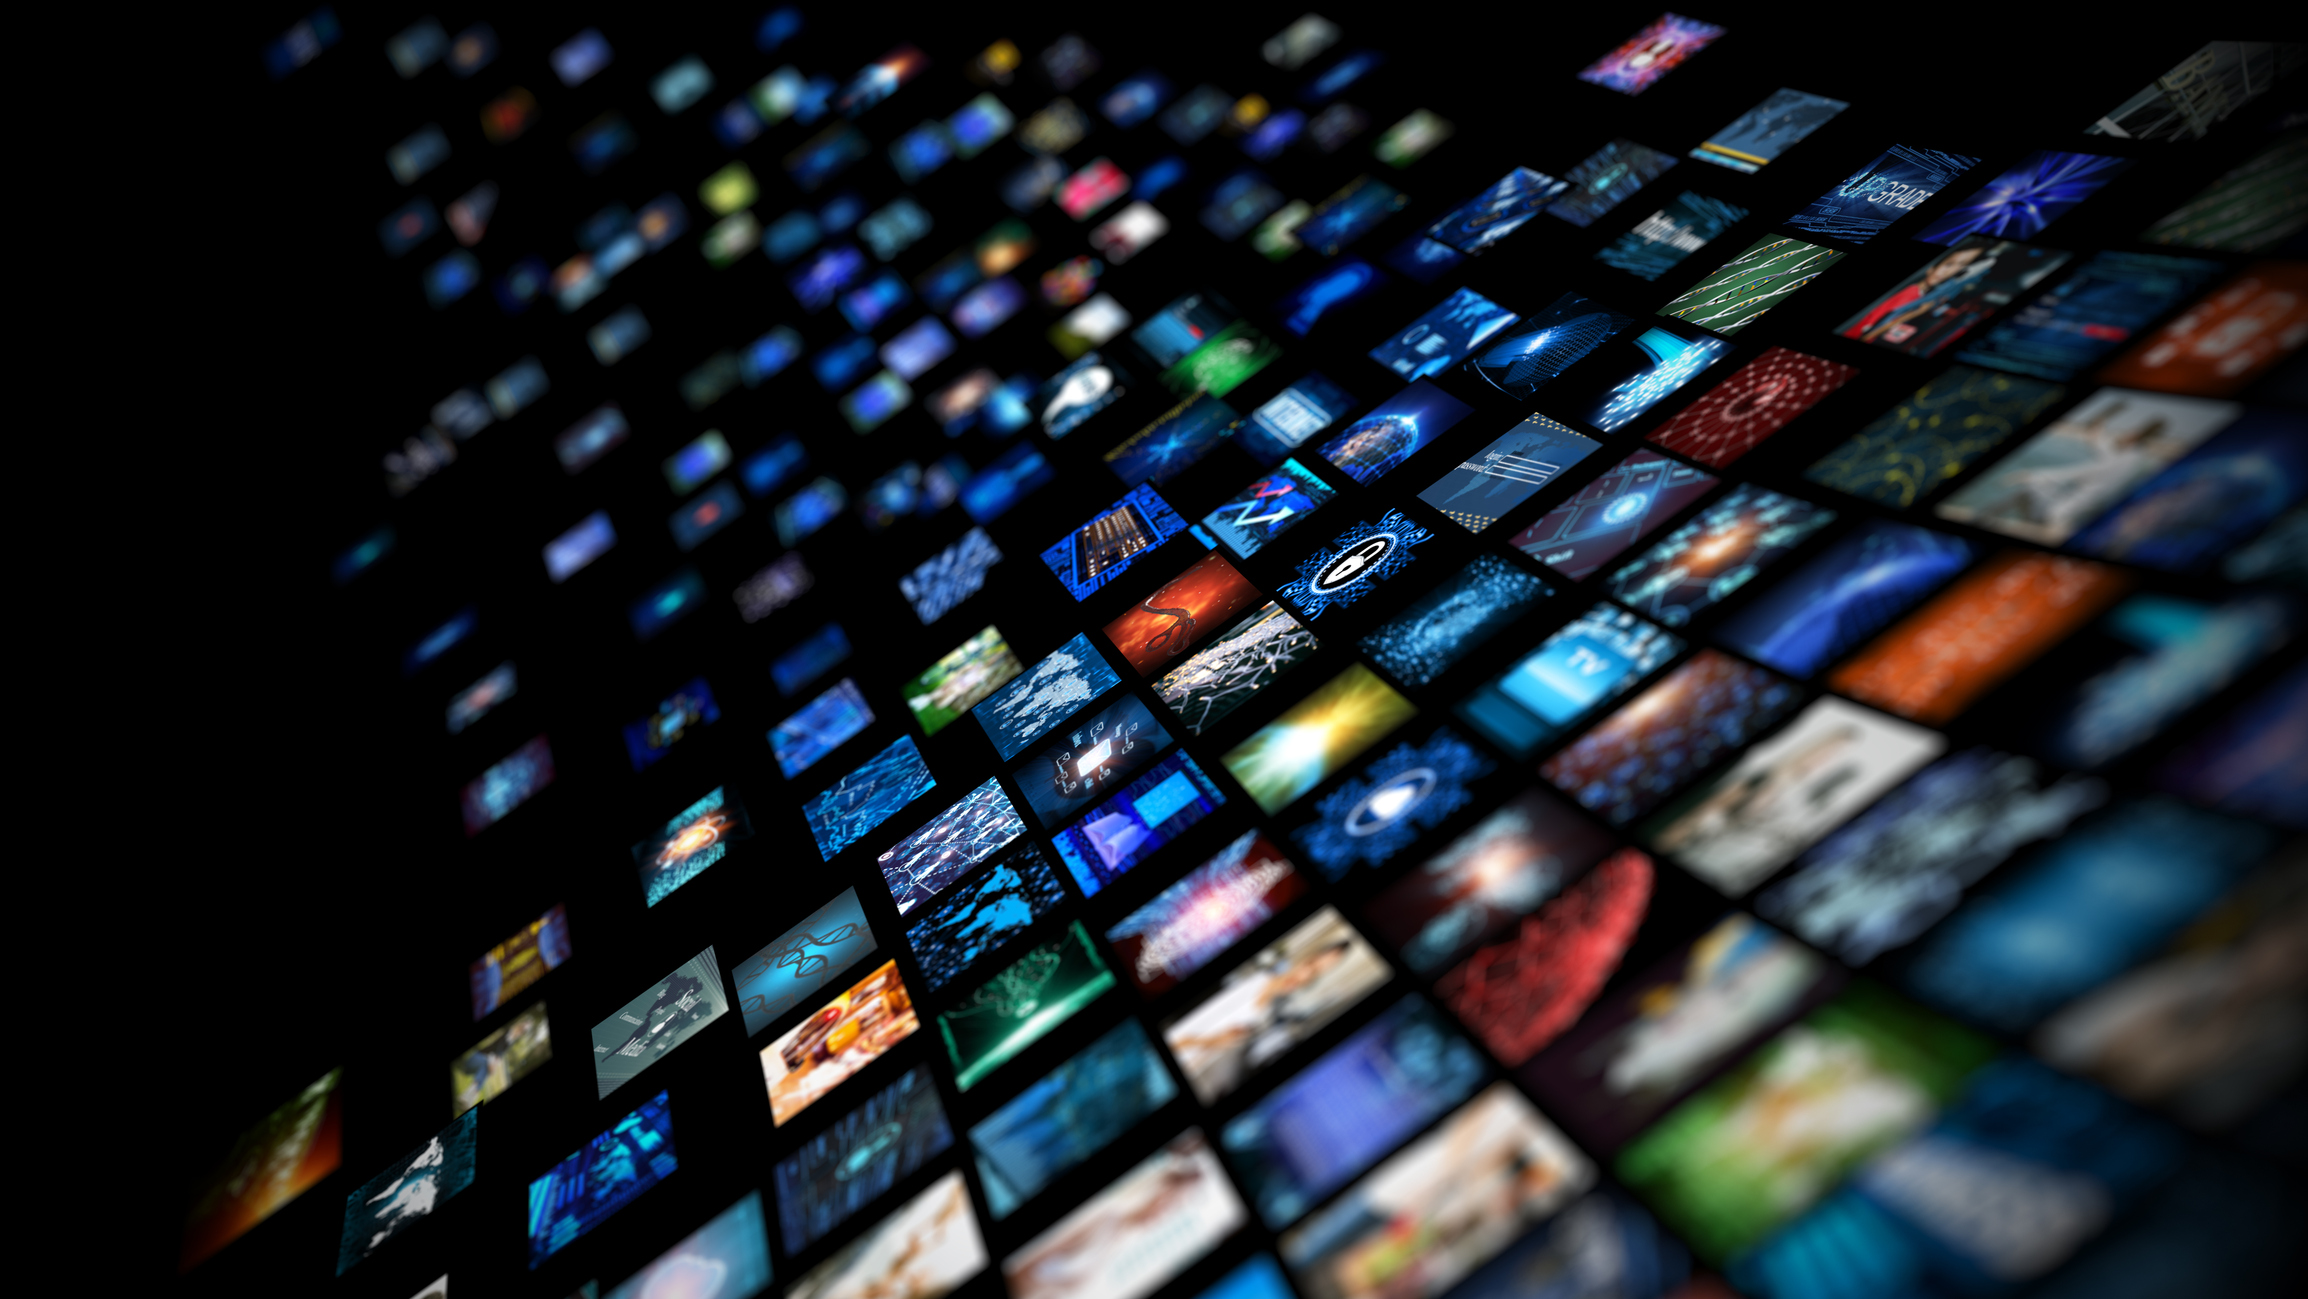 Demystifying Media and Entertainment Storage for Bottom-Line Benefits